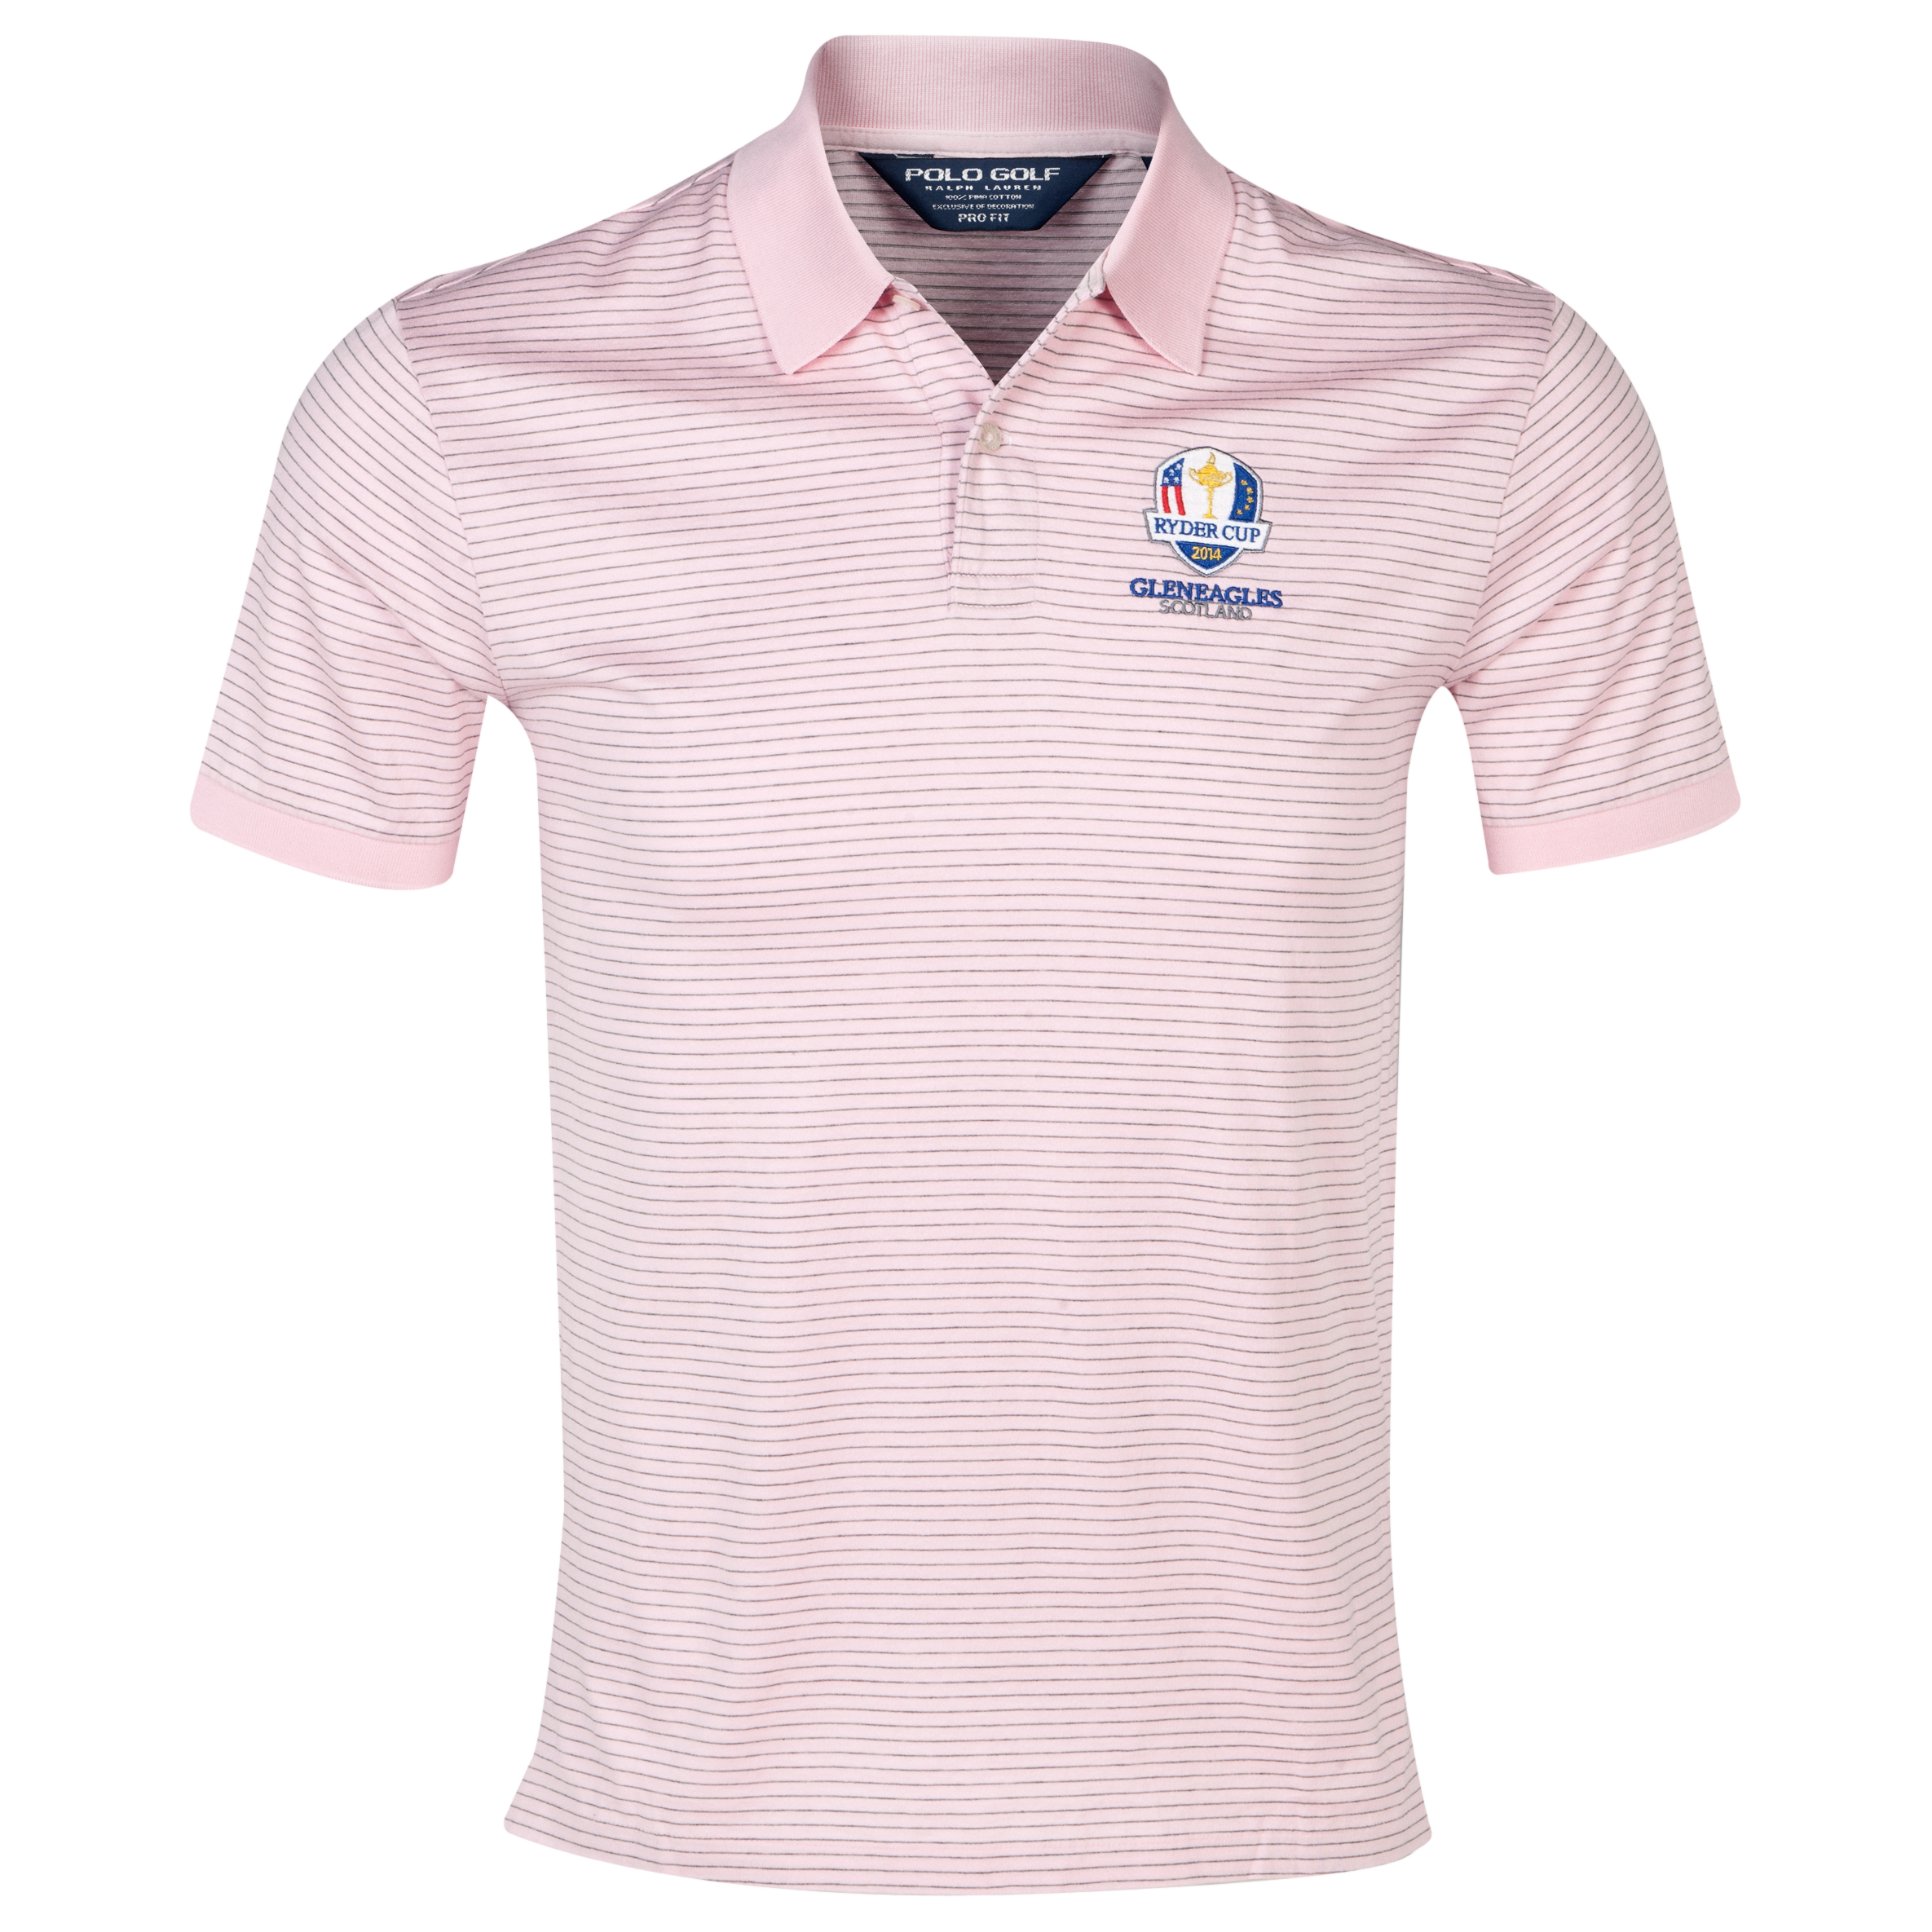 The 2014 Ryder Cup Ralph Lauren Stripe Polo Pink